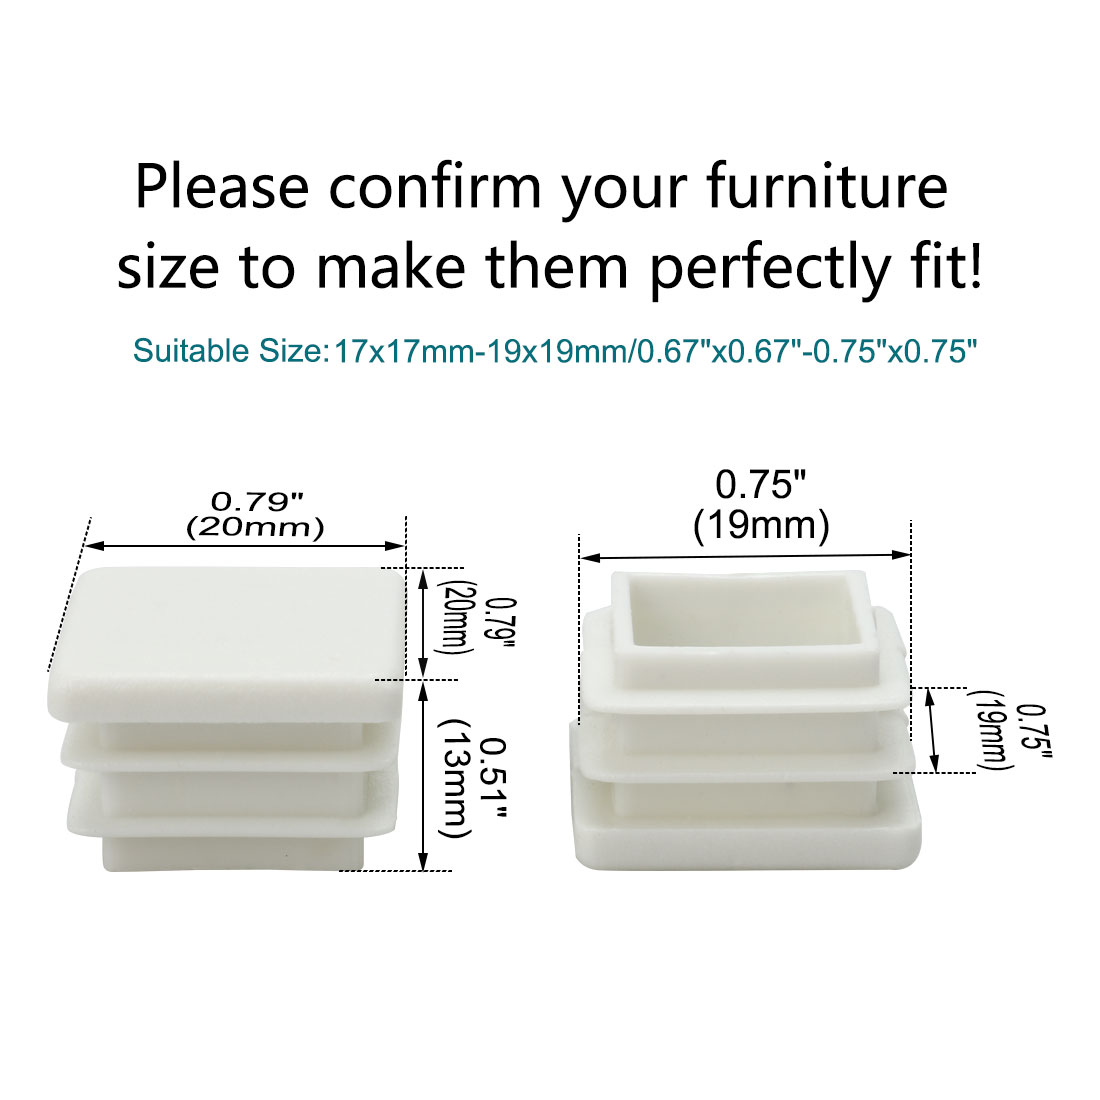 "20 x 20mm Plastic Square Ribbed Tube Inserts Cover Caps, for 0.67"" to 0.75"" Inner Size, Furniture Desk Chair Feet Floor - image 3 of 7"